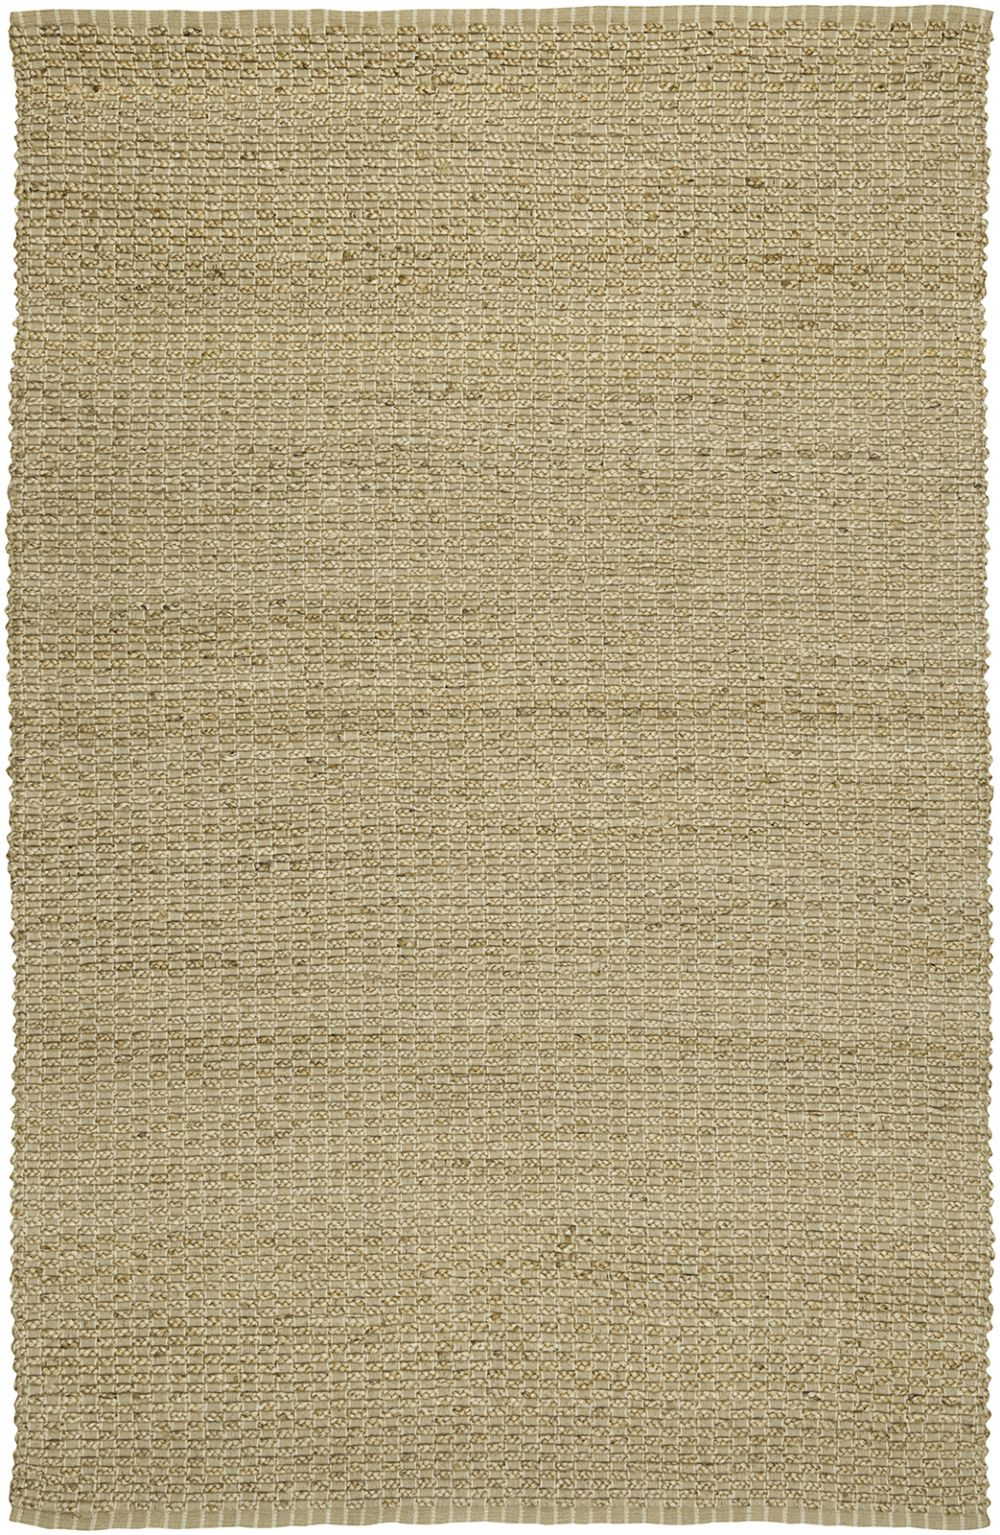 lr resources dockside natural fiber area rug collection